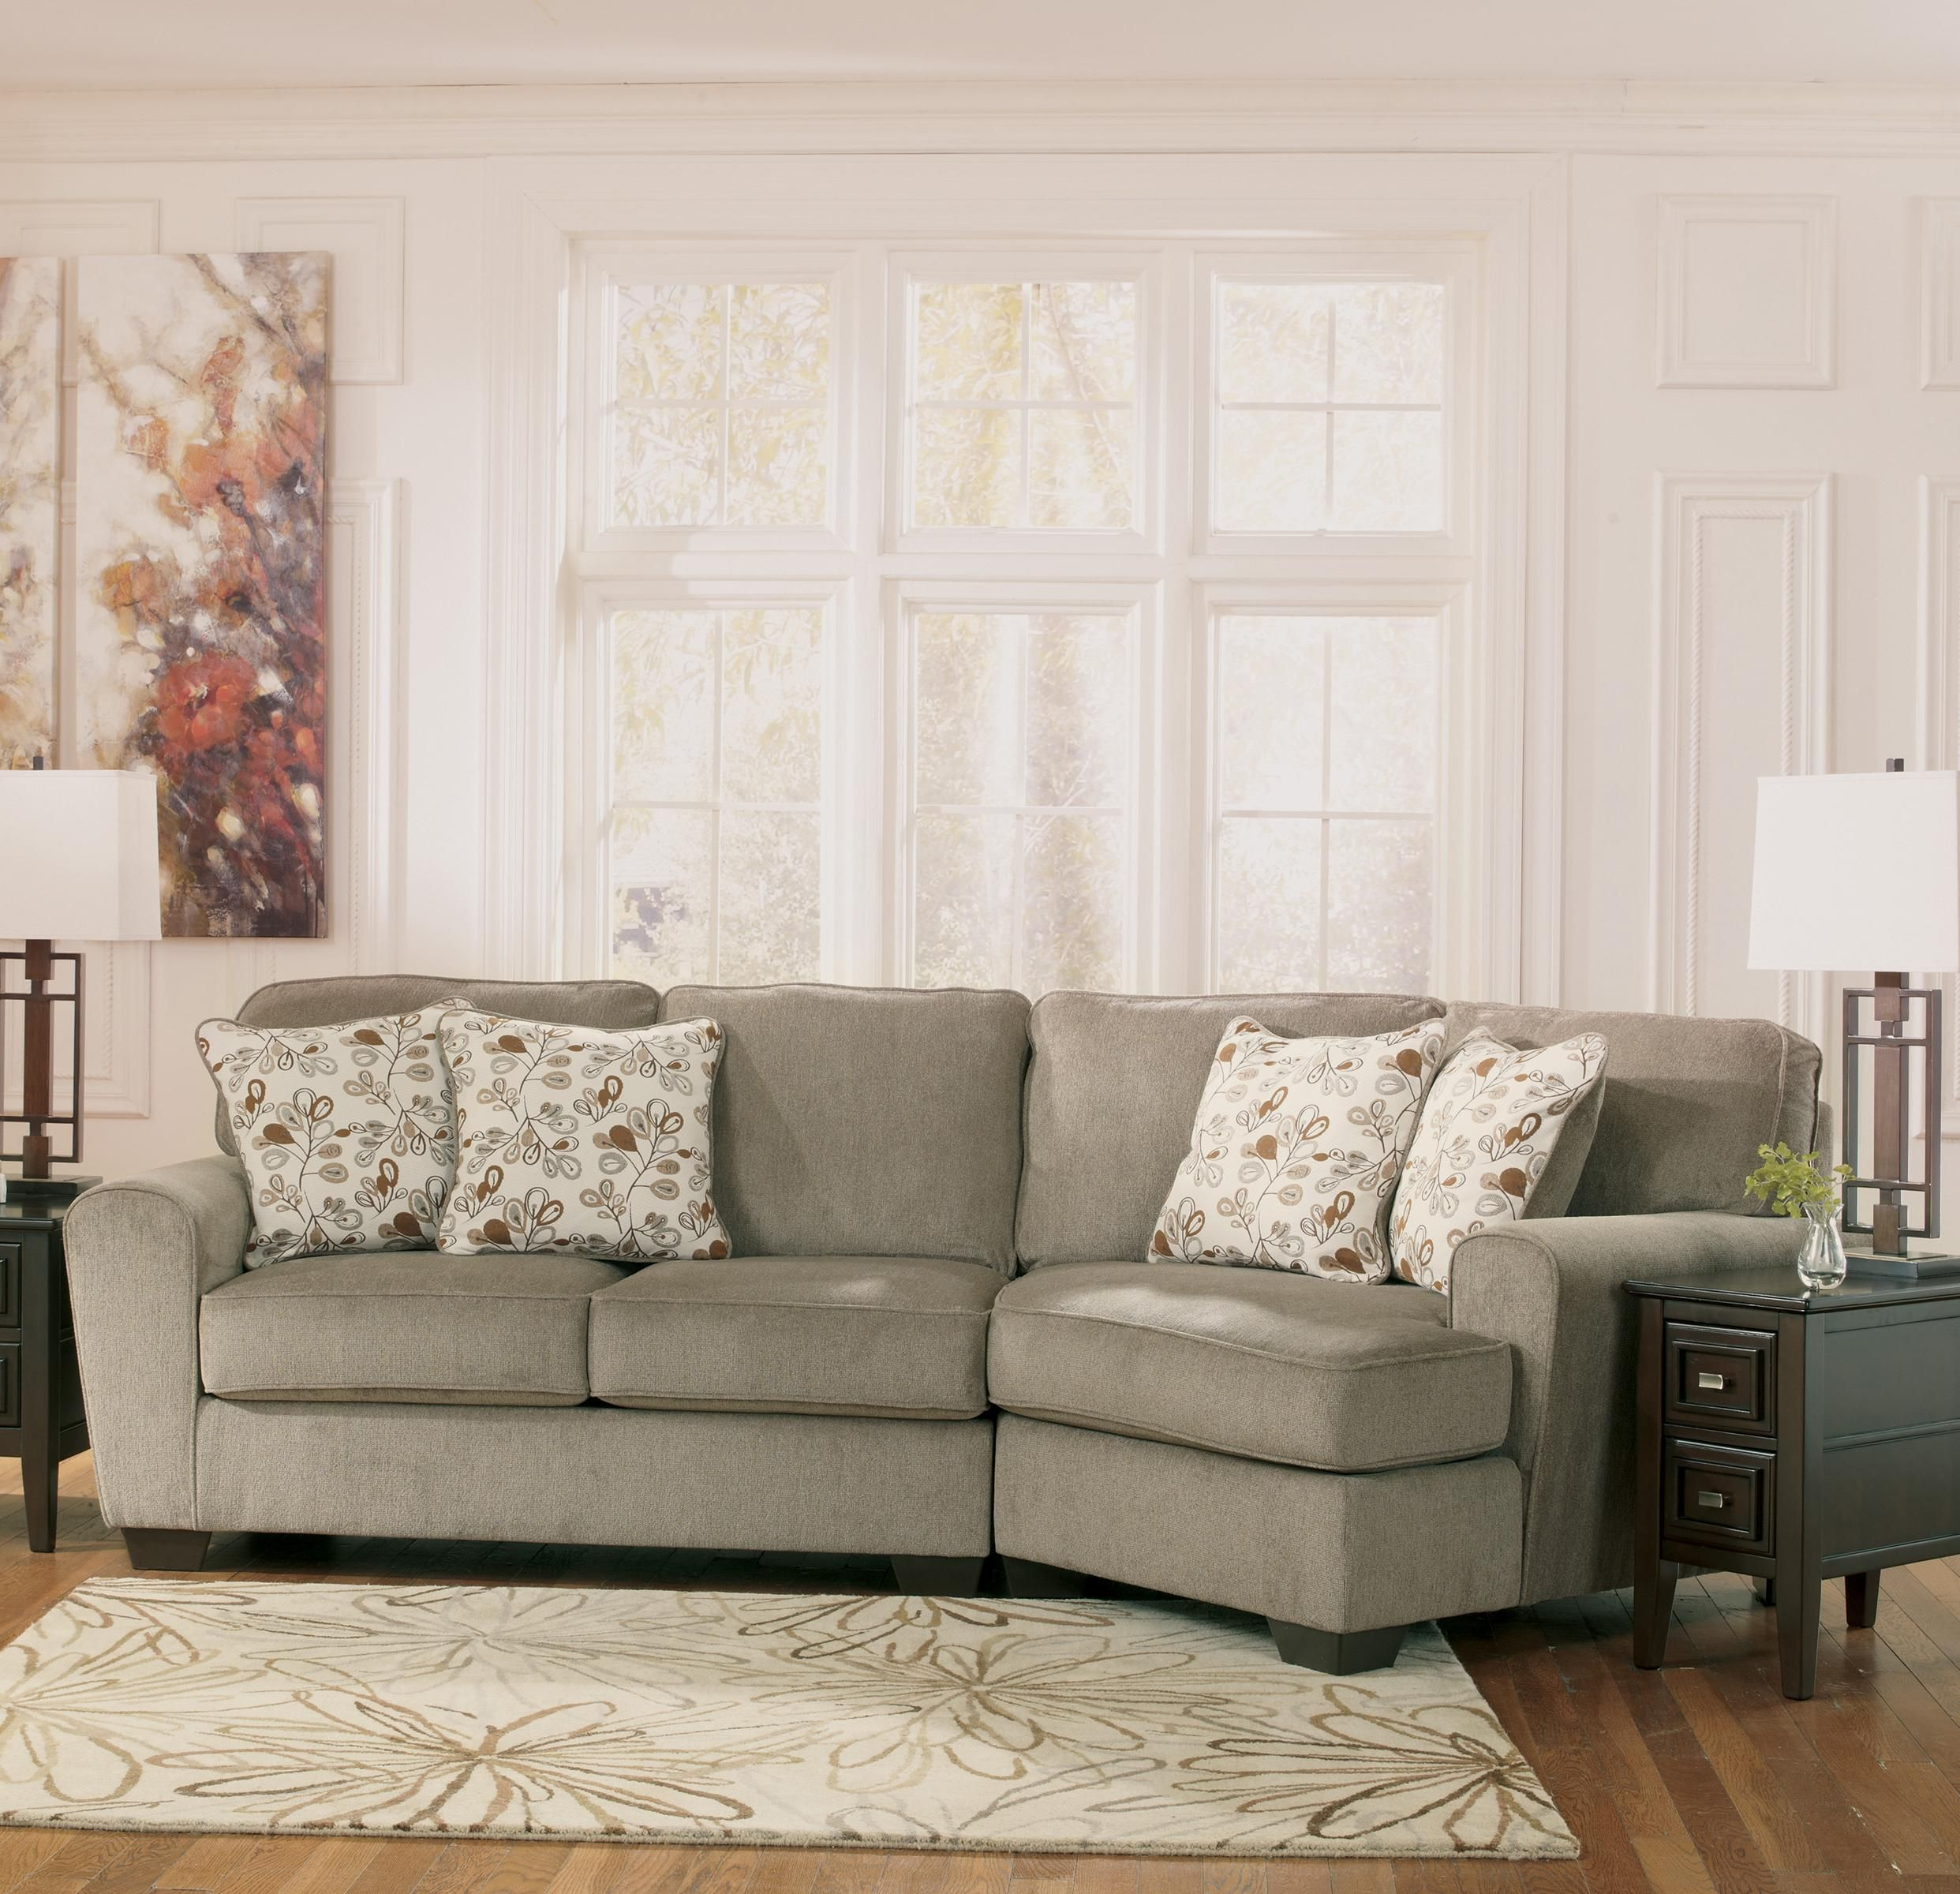 finding lucia gxd perfect bed cuddler blogbeen chair lusoles with couch the majestic sofa